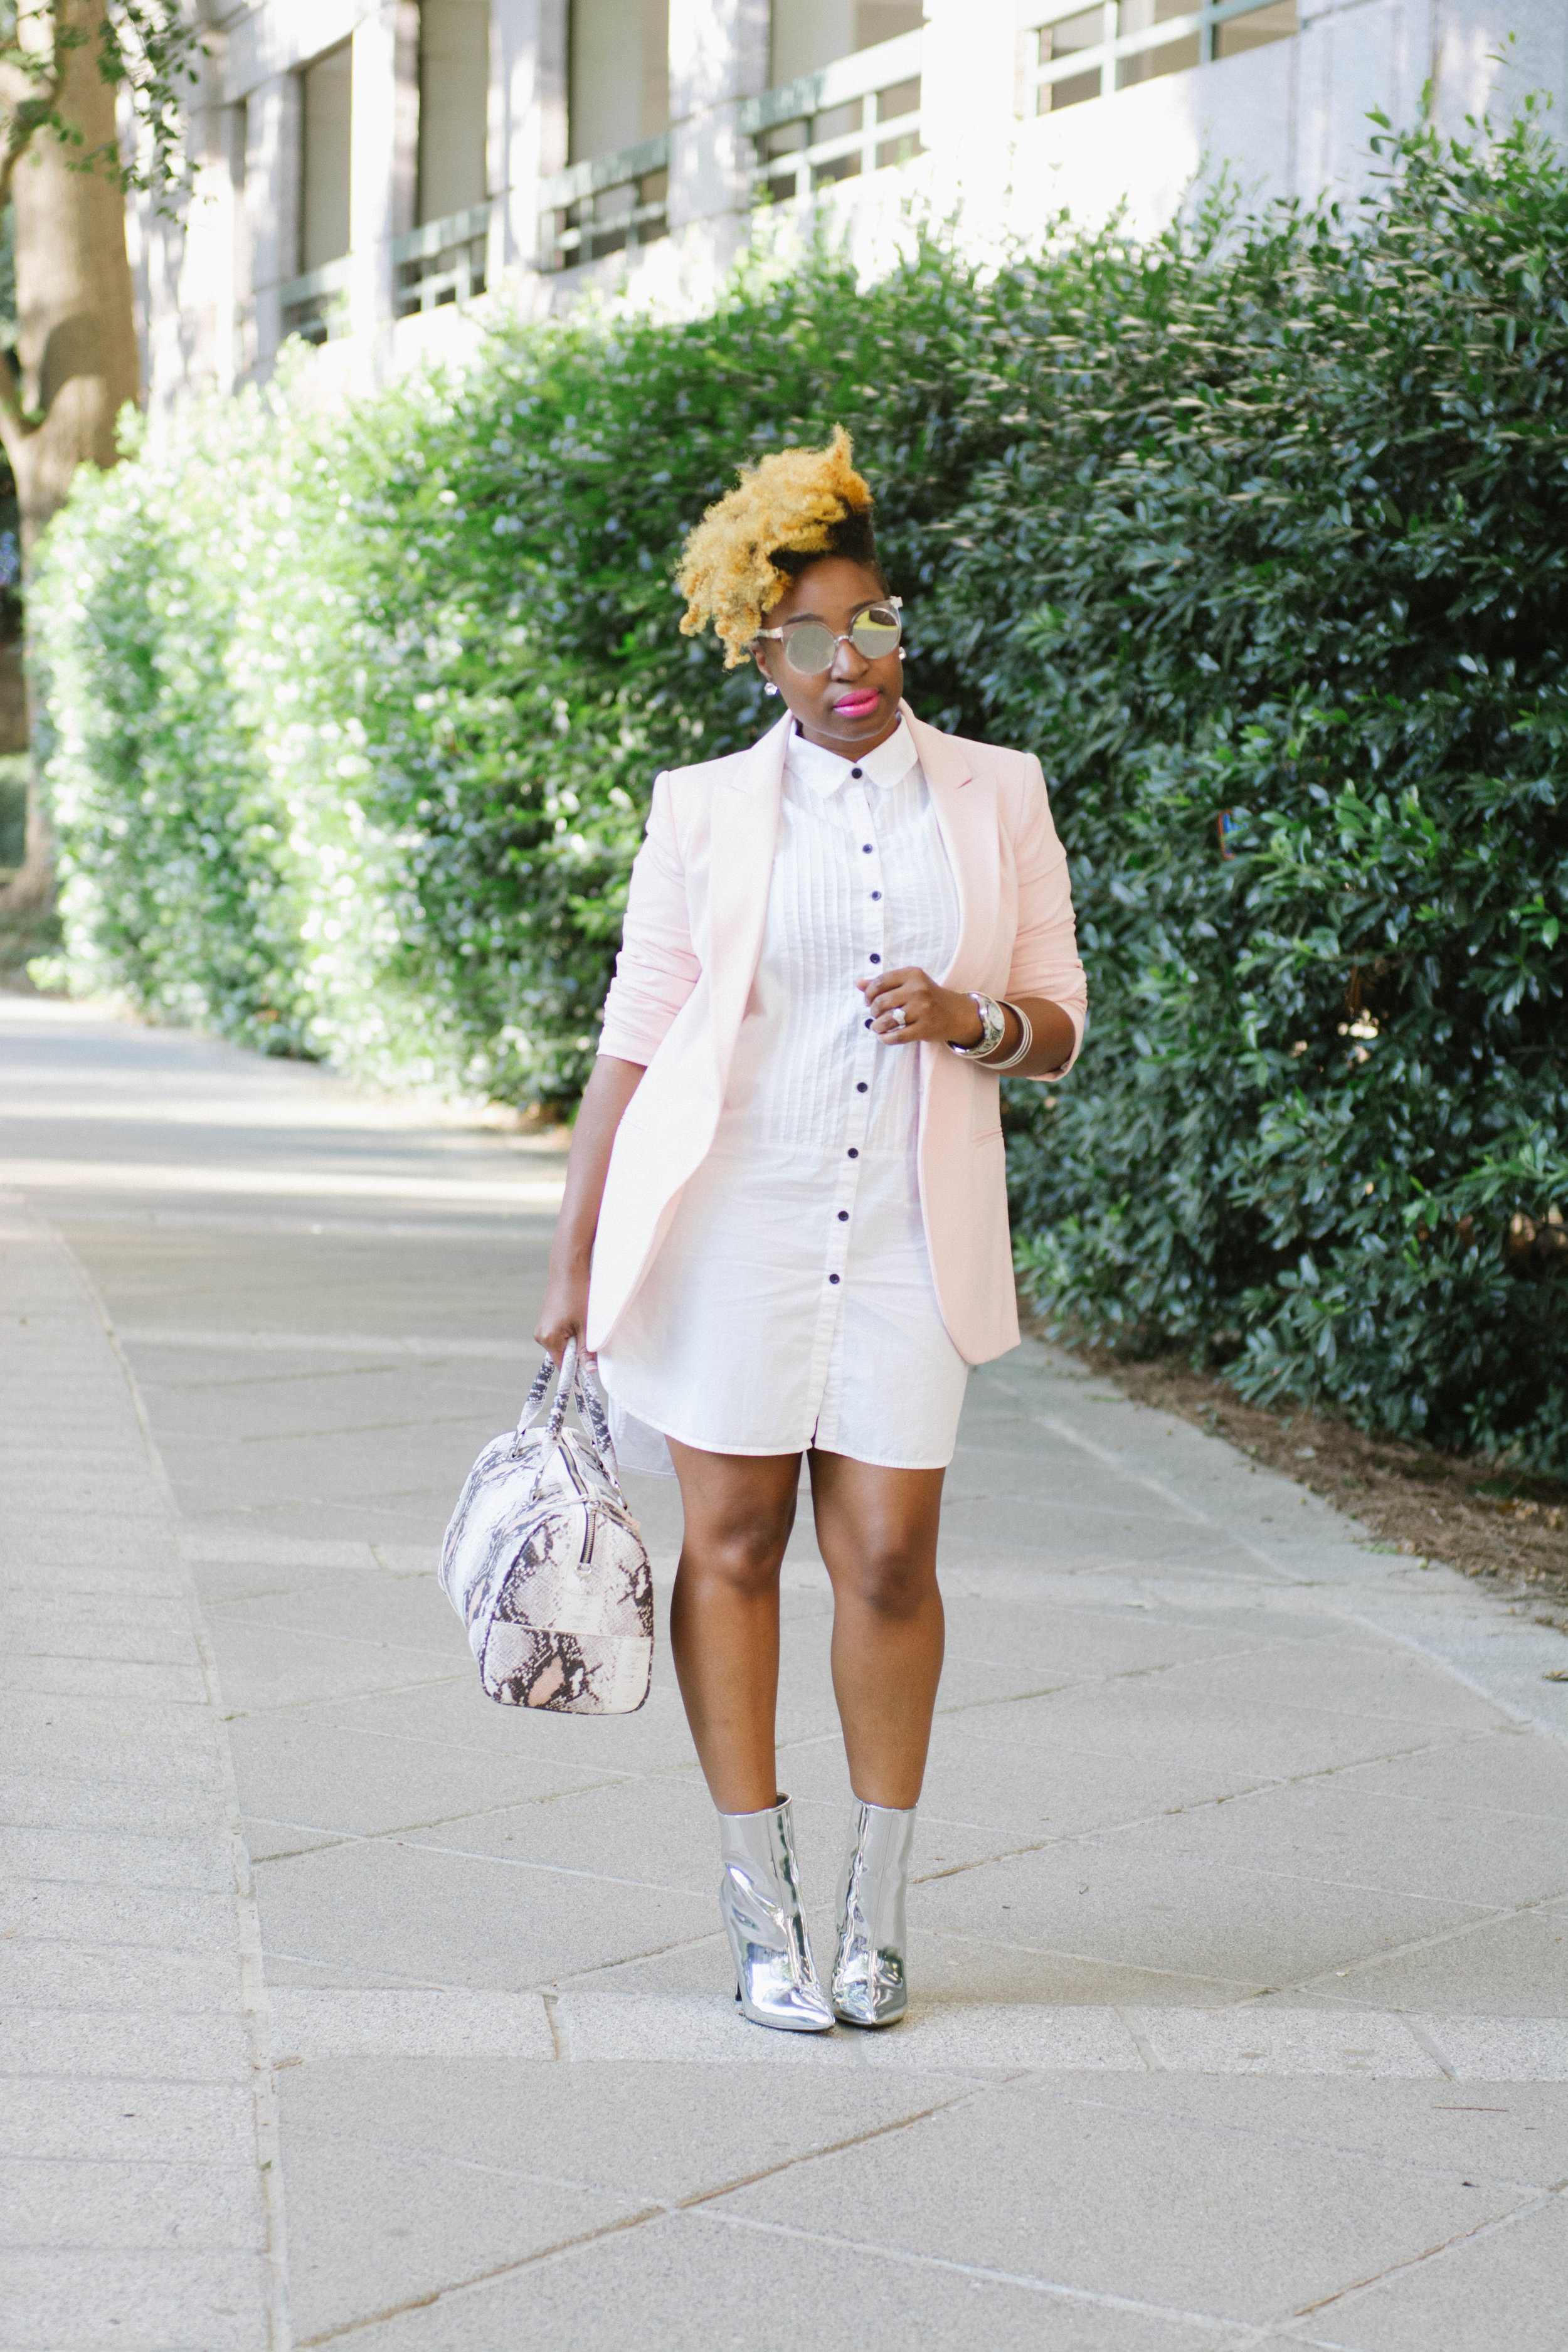 Melodie Stewart, The Style Klazit, NYFW, New York Fashion Week, Atlanta style blogger, Justfab shoes, Silver booties, thrifted fashion